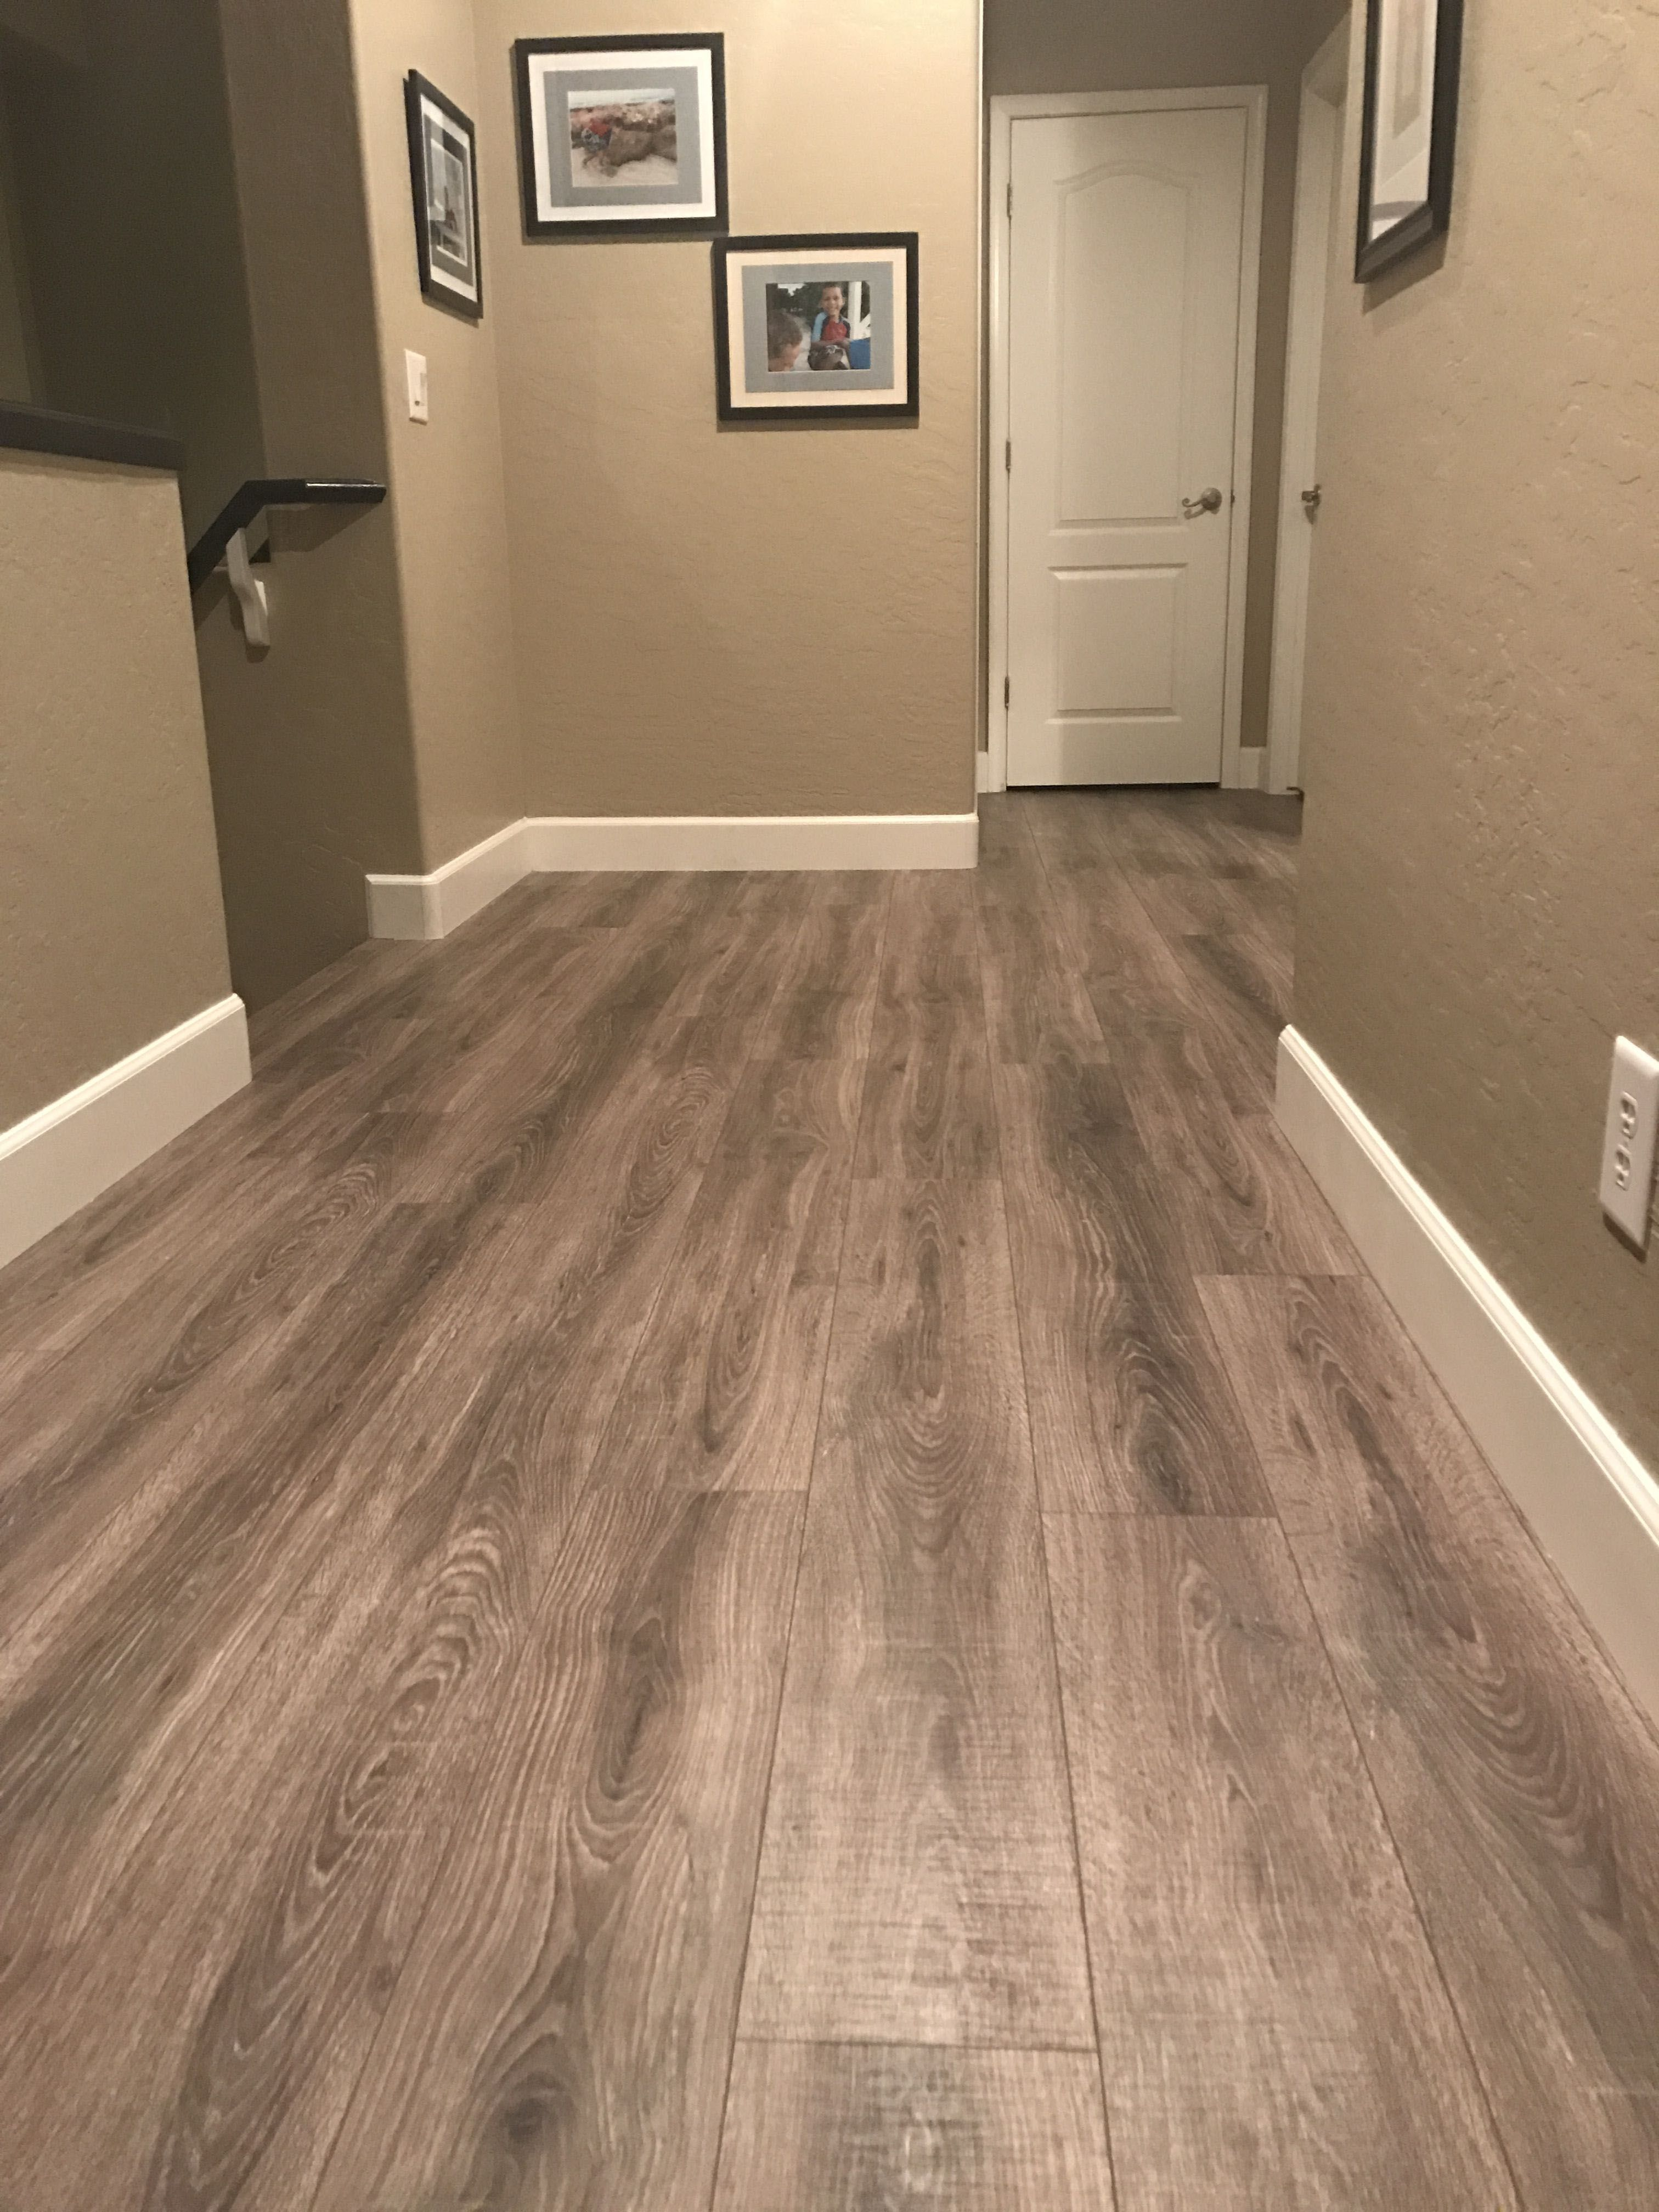 Pin By Amat On New Home With Images Luxury Vinyl Flooring Vinyl Wood Flooring Flooring Trends